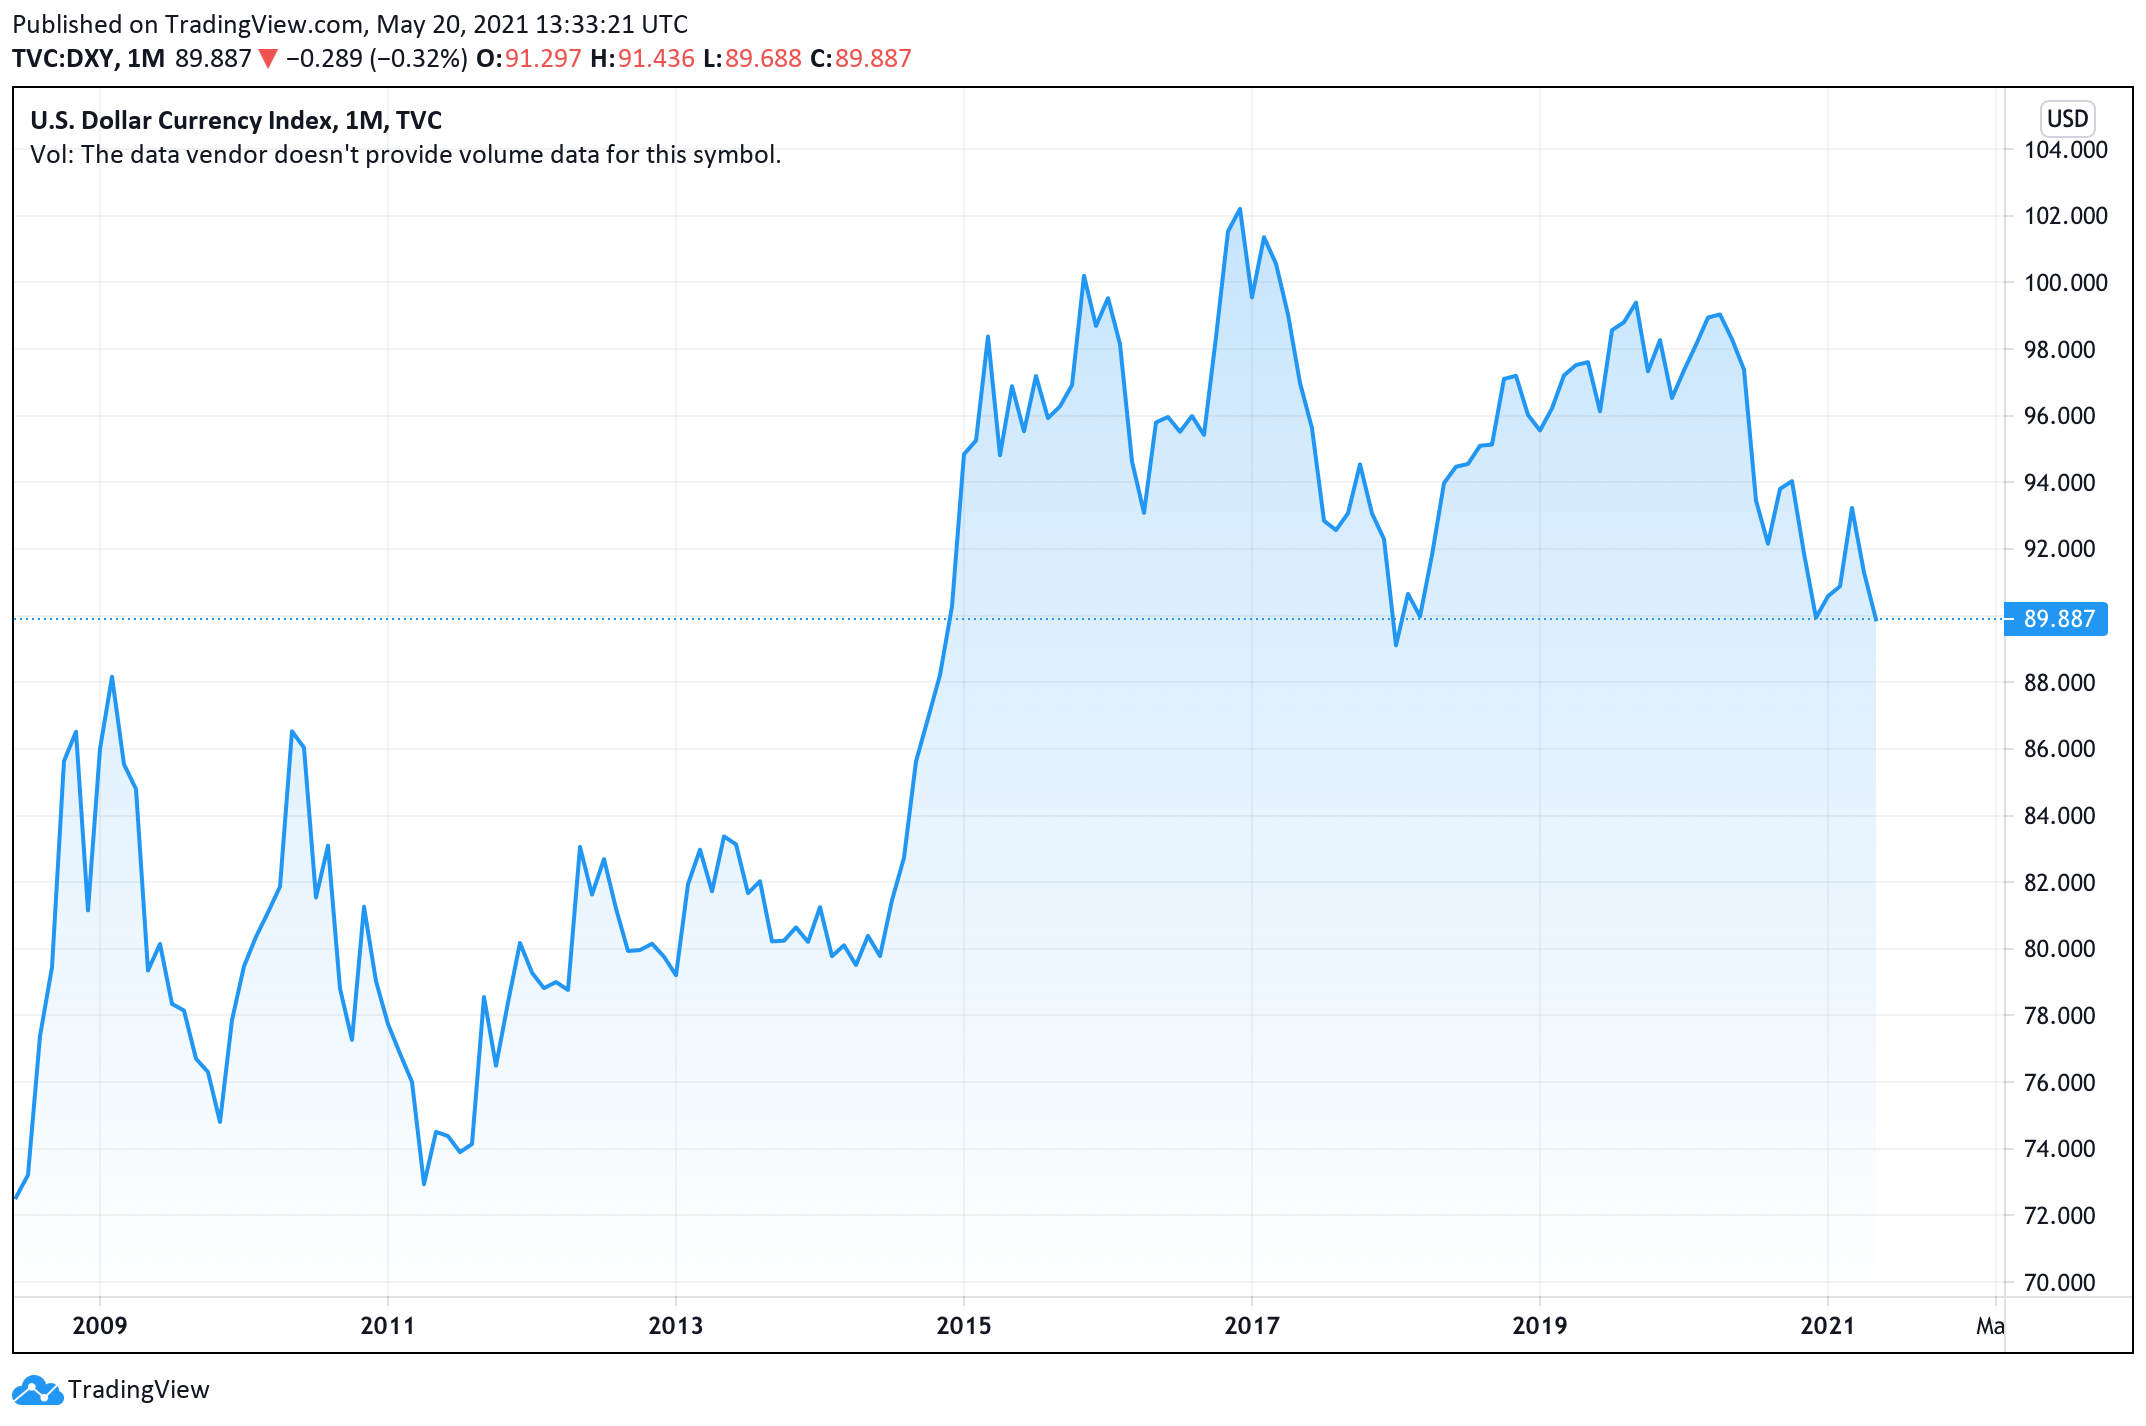 US Dollar Drops to a Three-Year Low, Greenback Could Dip 10% Lower, Fed Still Not Ready to Taper QE